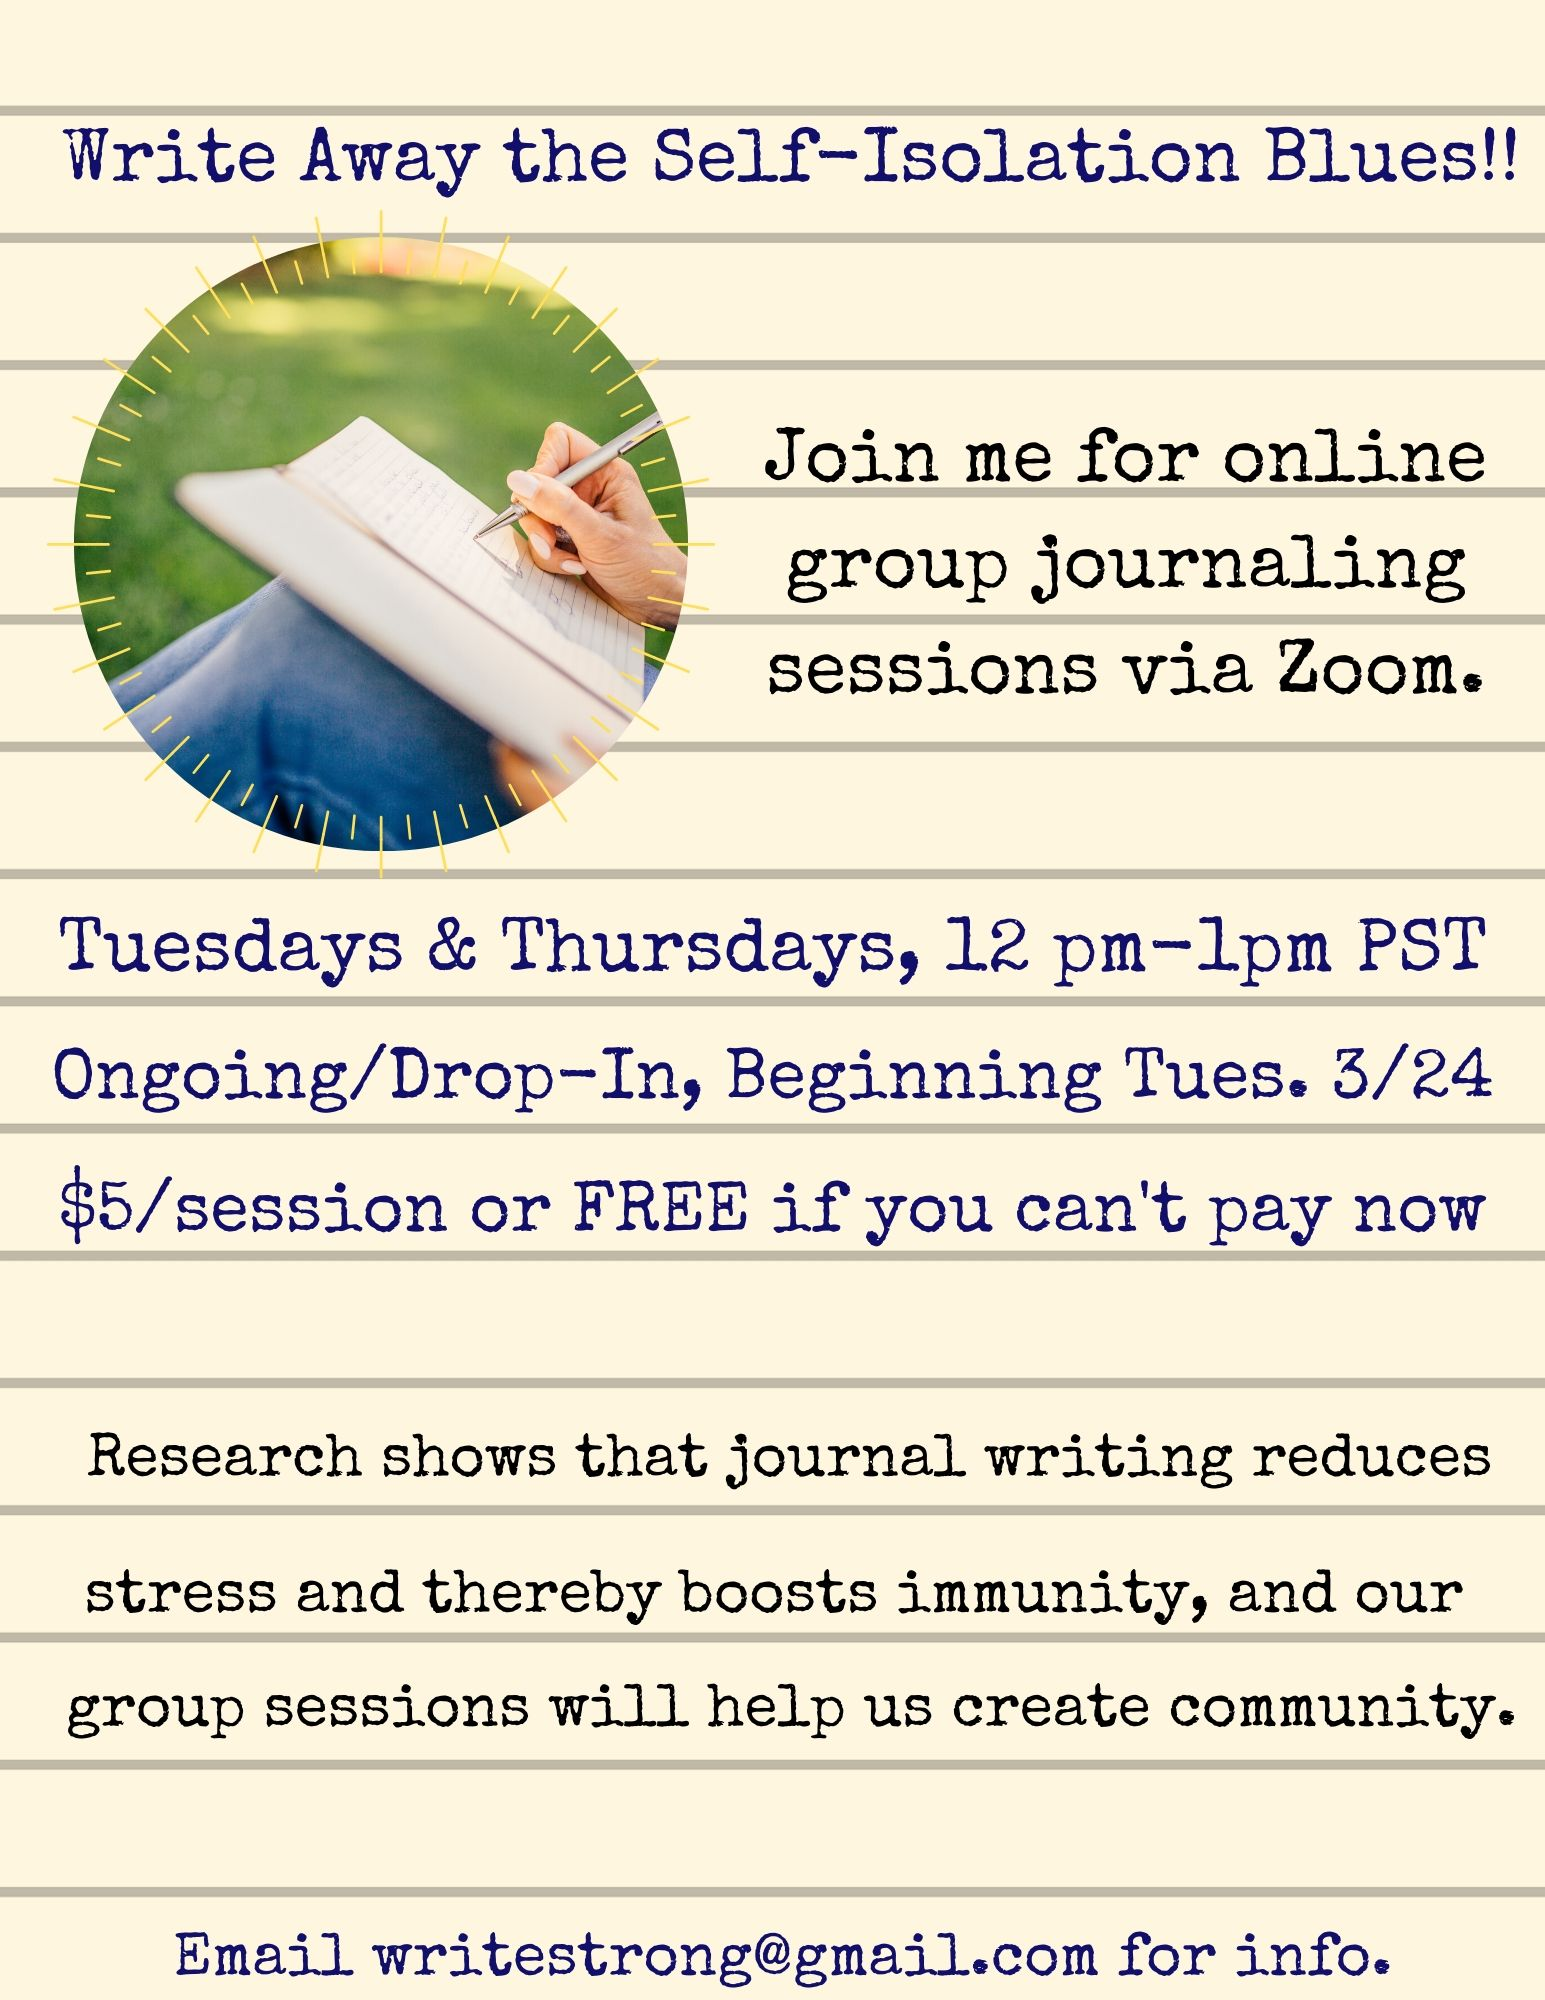 Introducing Online Journaling Sessions